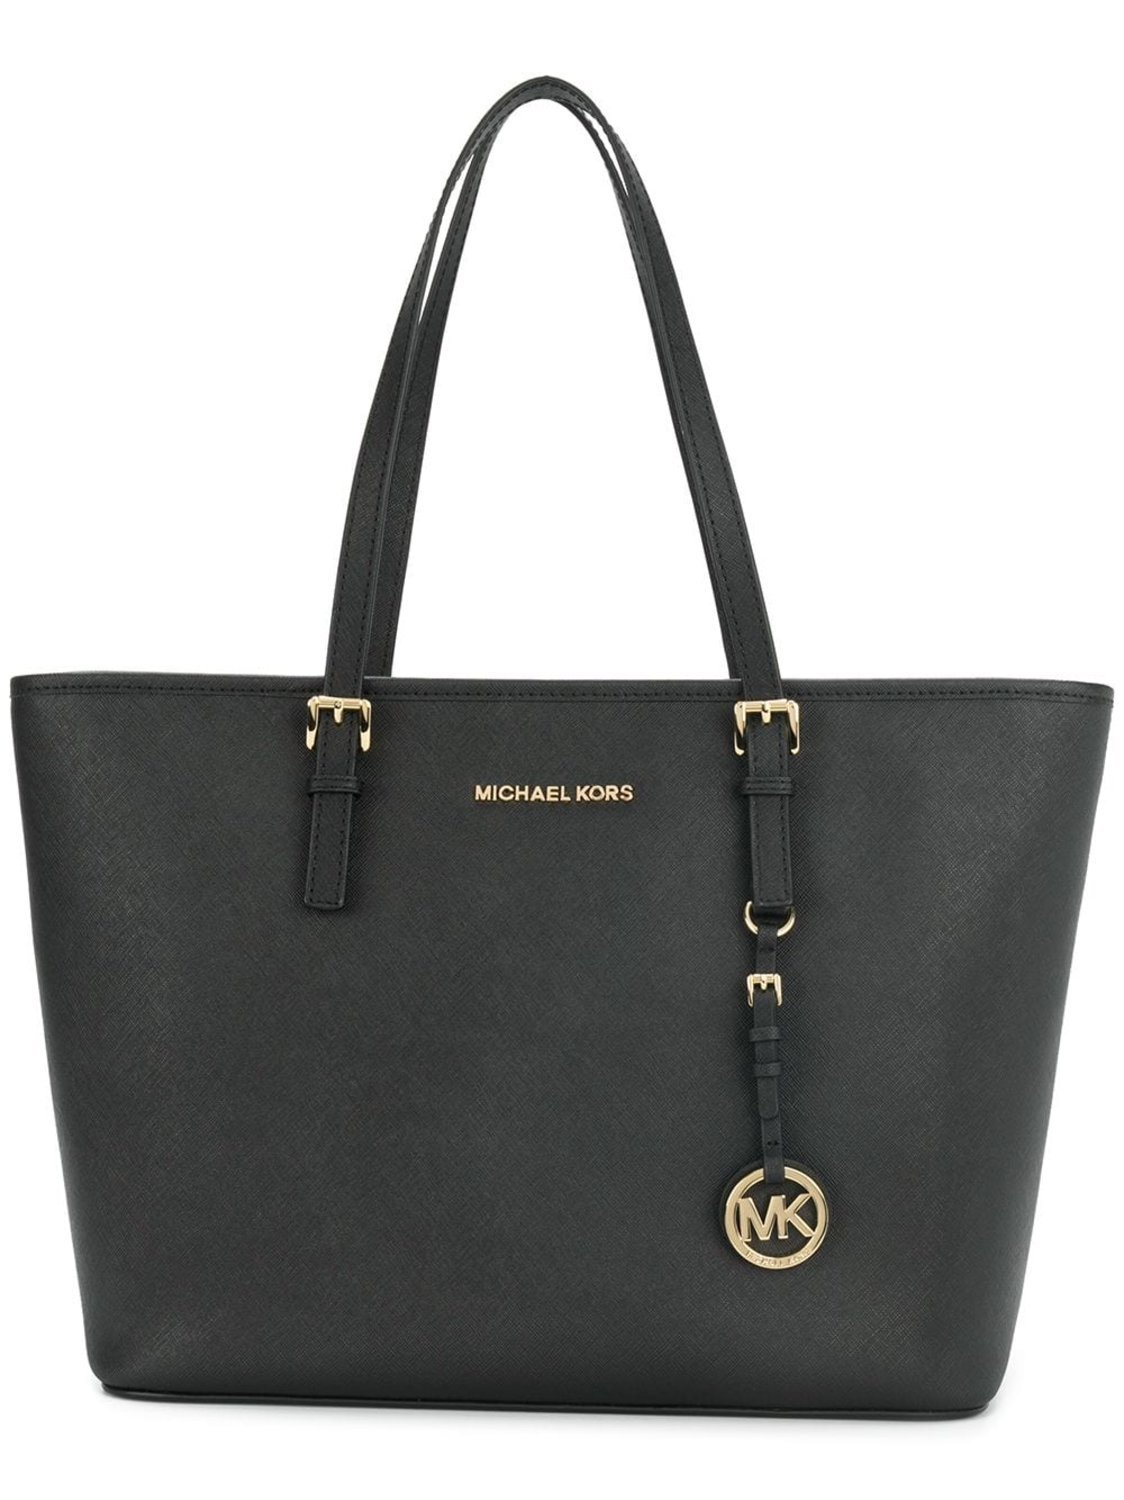 3c89ad537 Väska ÄKTA Michael Kors Jet Set Travel MD Svart.. (349152312) ᐈ Köp ...